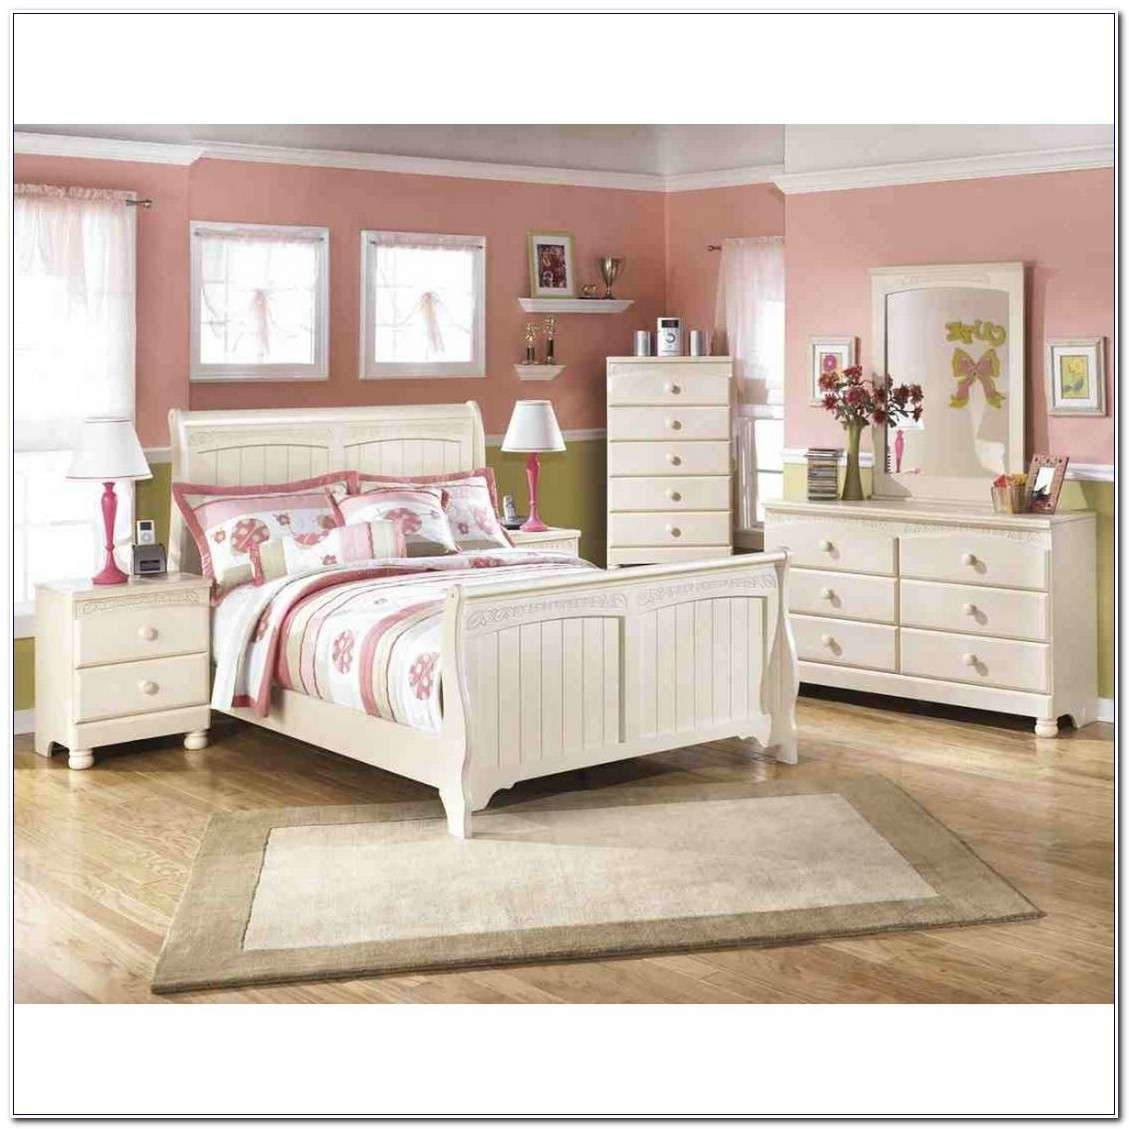 Best Cream Cottage Bedroom Set – Bedroom Ideas With Pictures